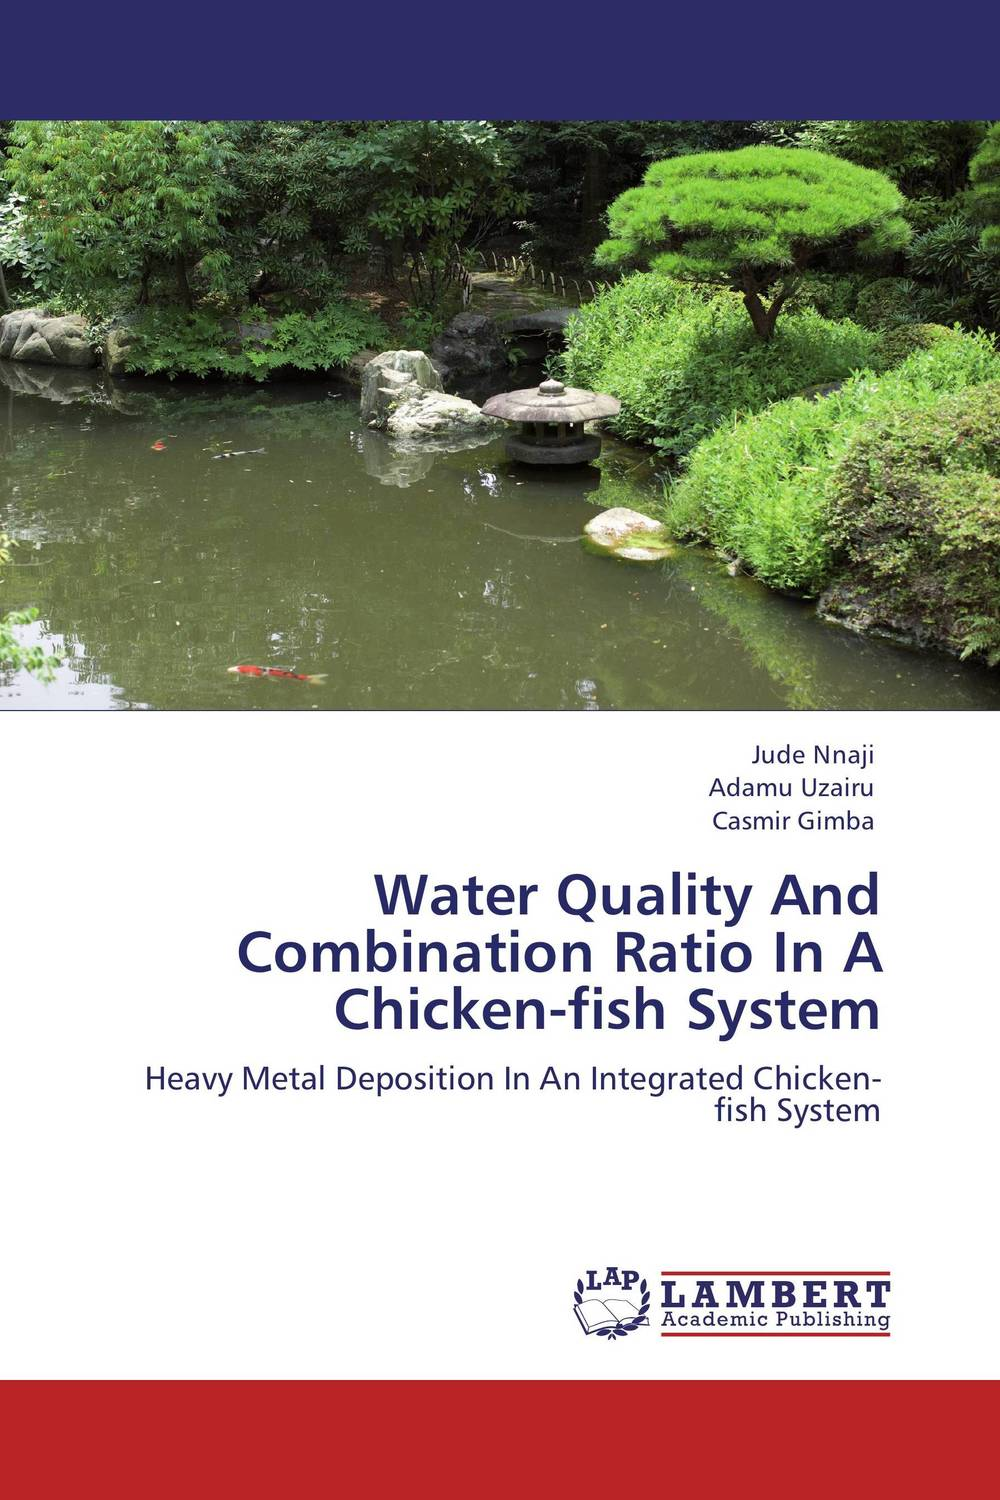 Water Quality And Combination Ratio In A Chicken-fish System the feed additive and the fish